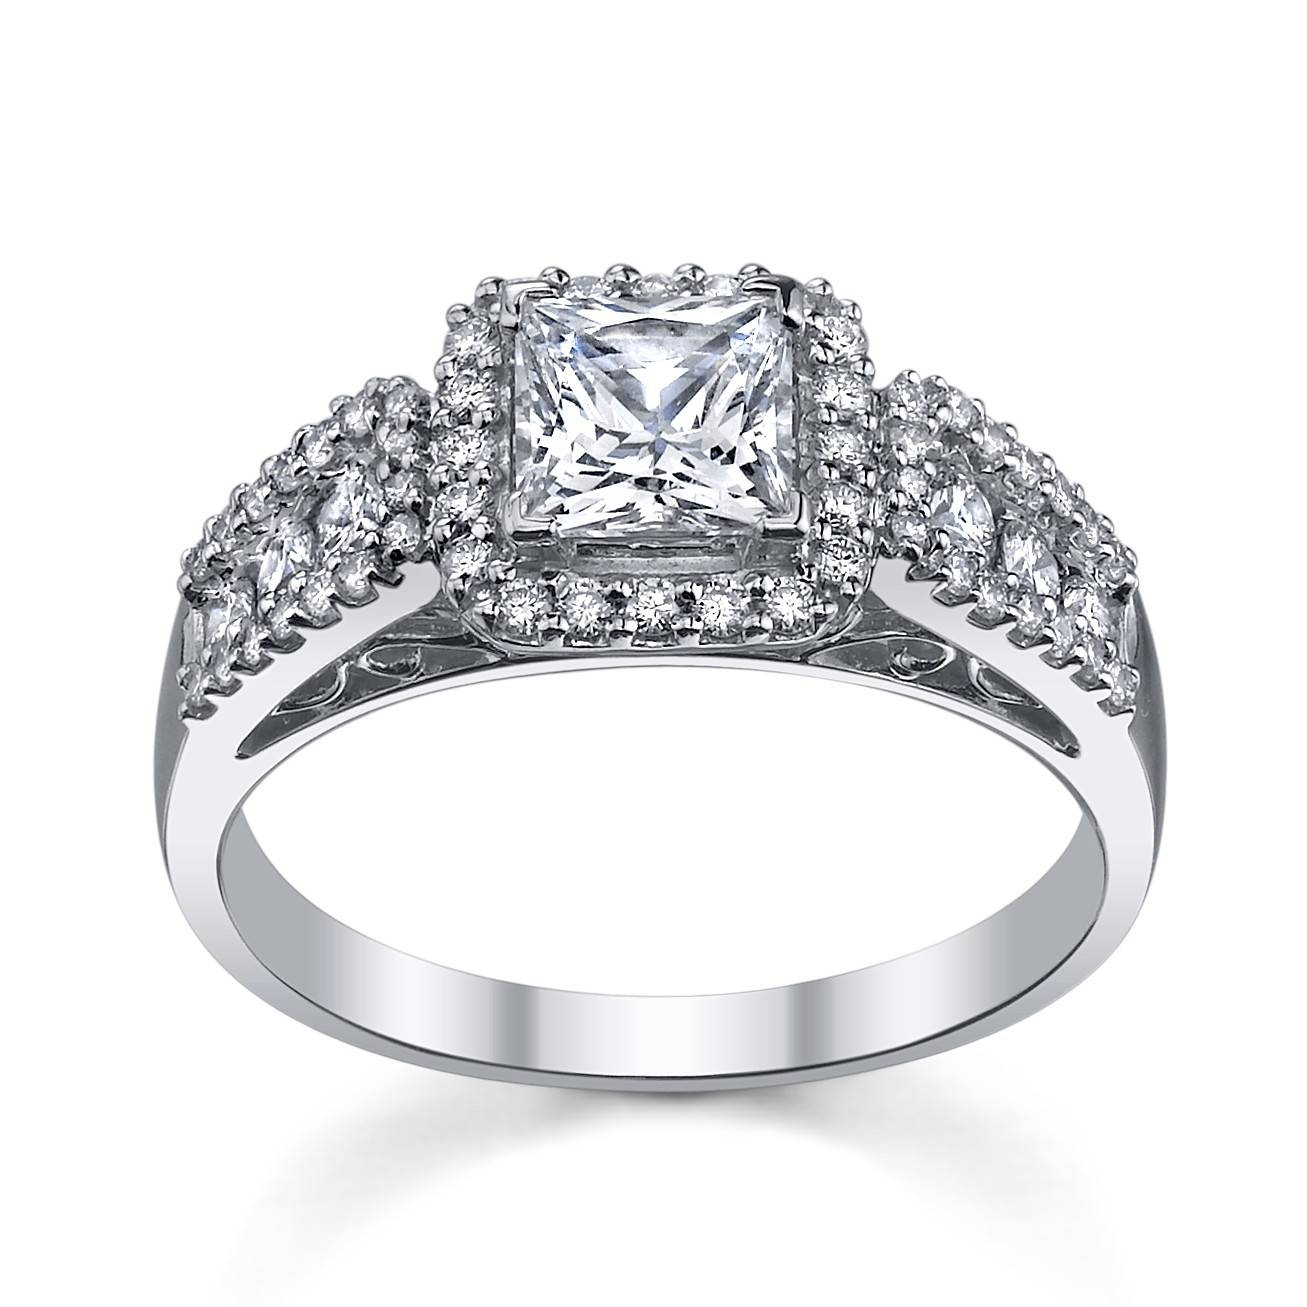 Wedding Rings : Expensive Wedding Rings Wedding Ringss Intended For Extravagant Engagement Rings (View 14 of 15)